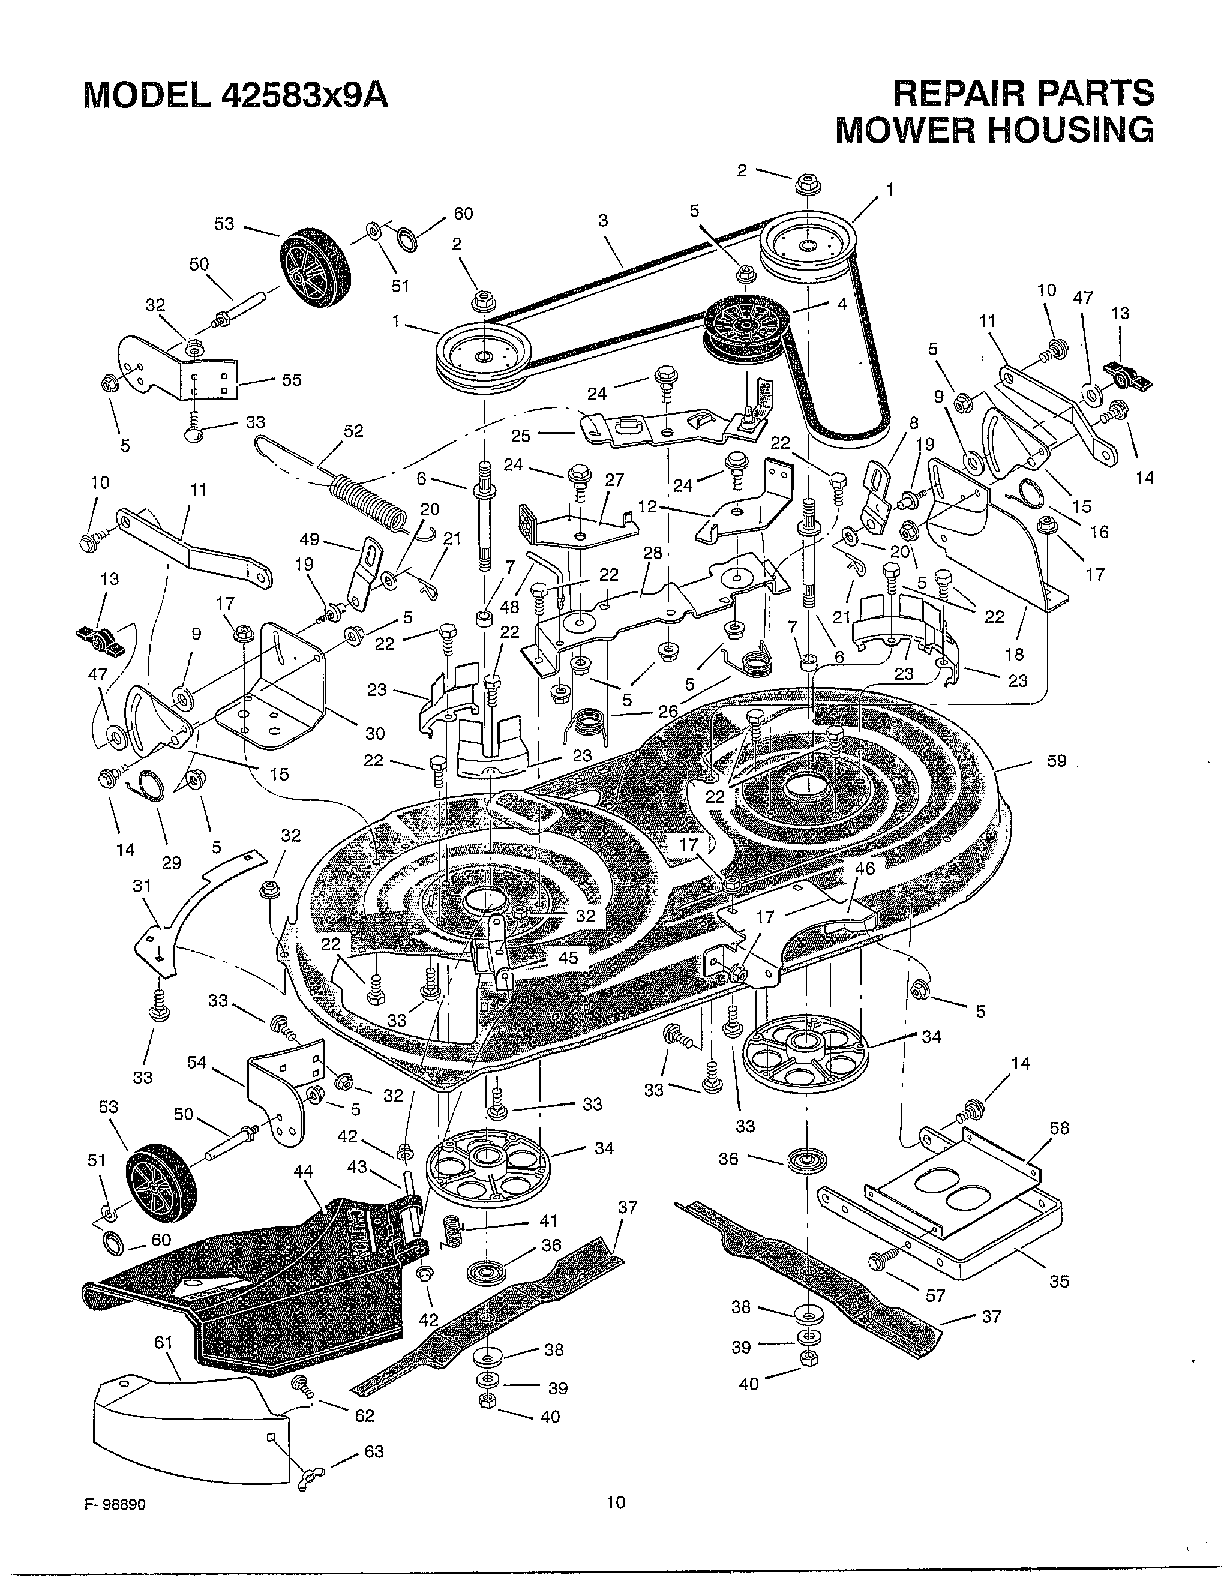 hight resolution of mower housing diagram and parts list for murray walkbehindlawnmower